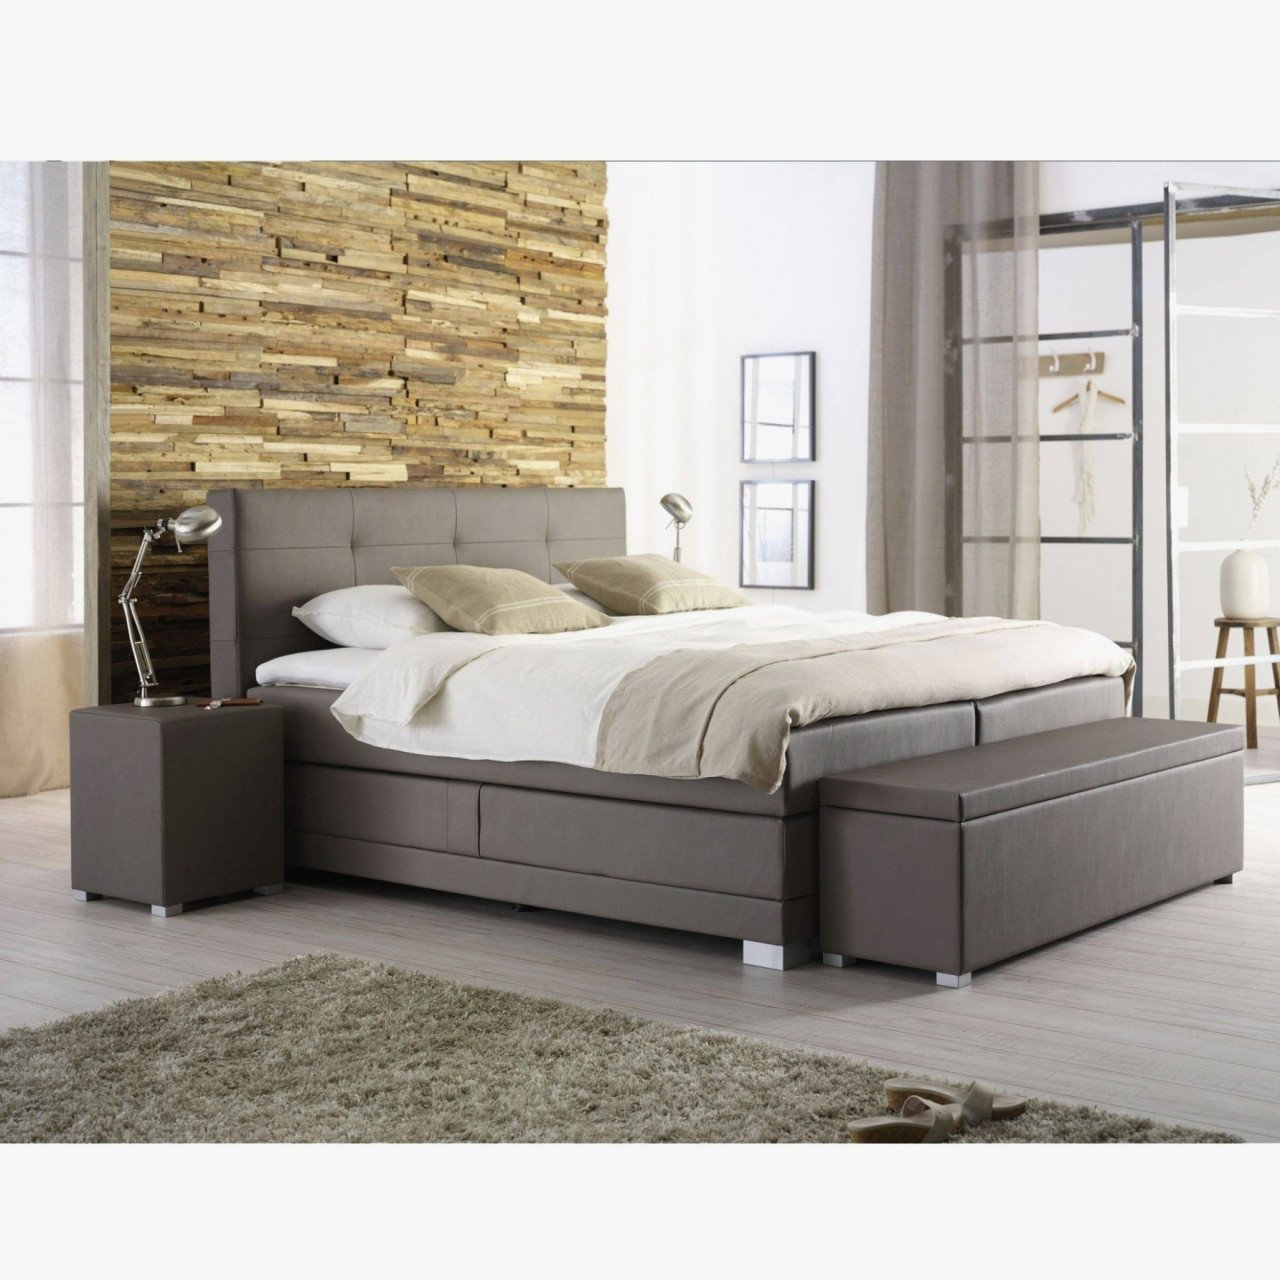 Best Place to Buy Bedroom Furniture Fresh Bed with Drawers Under — Procura Home Blog